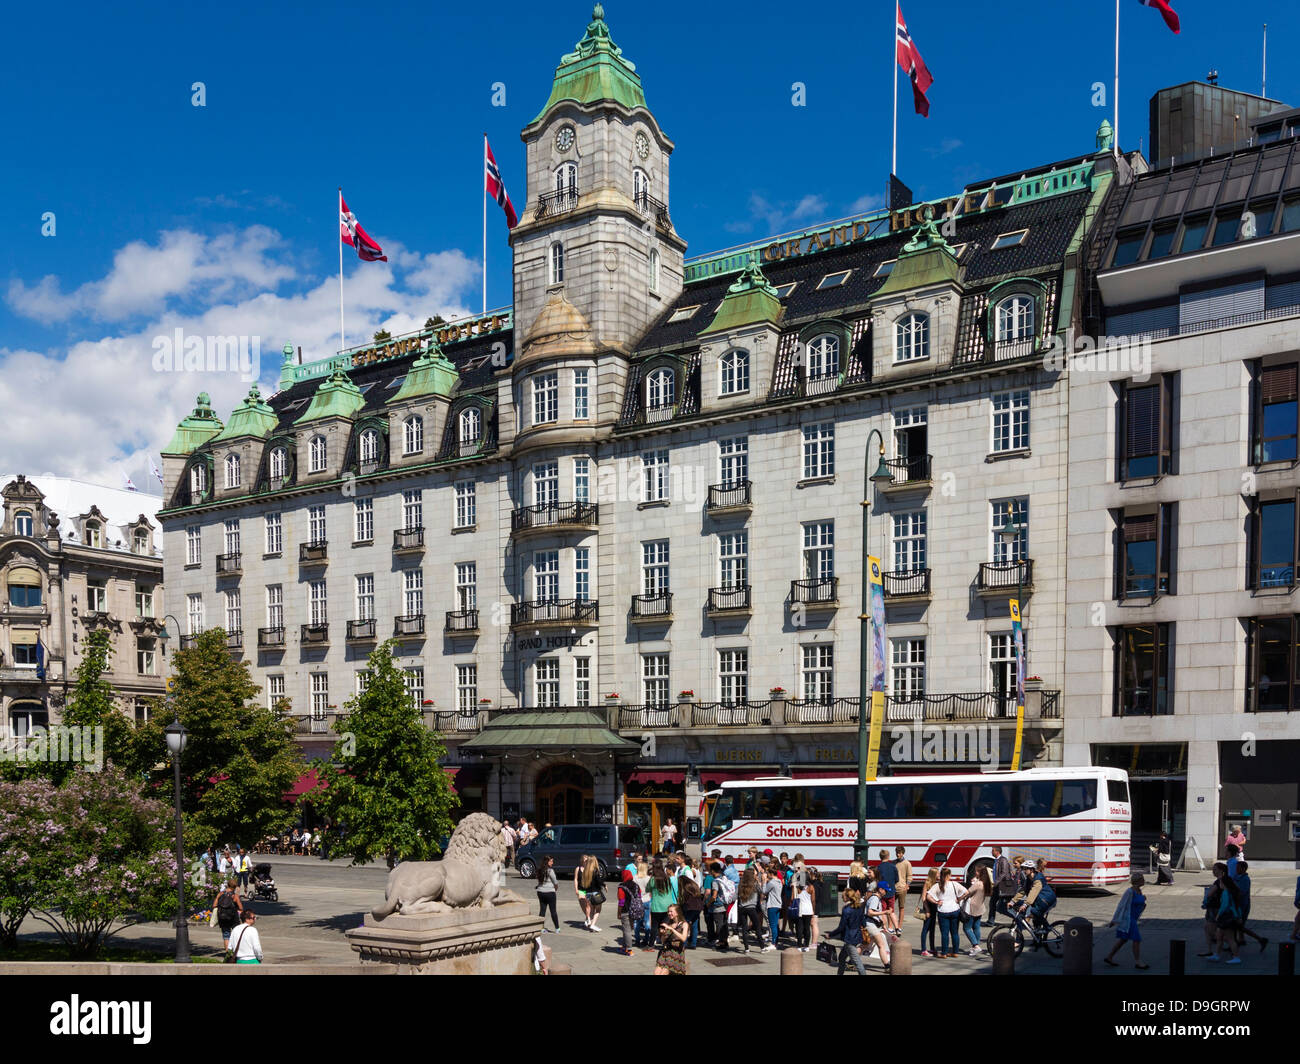 City of Oslo - The Grand Hotel where the Nobel Peace Dinner is held, Oslo, Norway, Europe - Stock Image